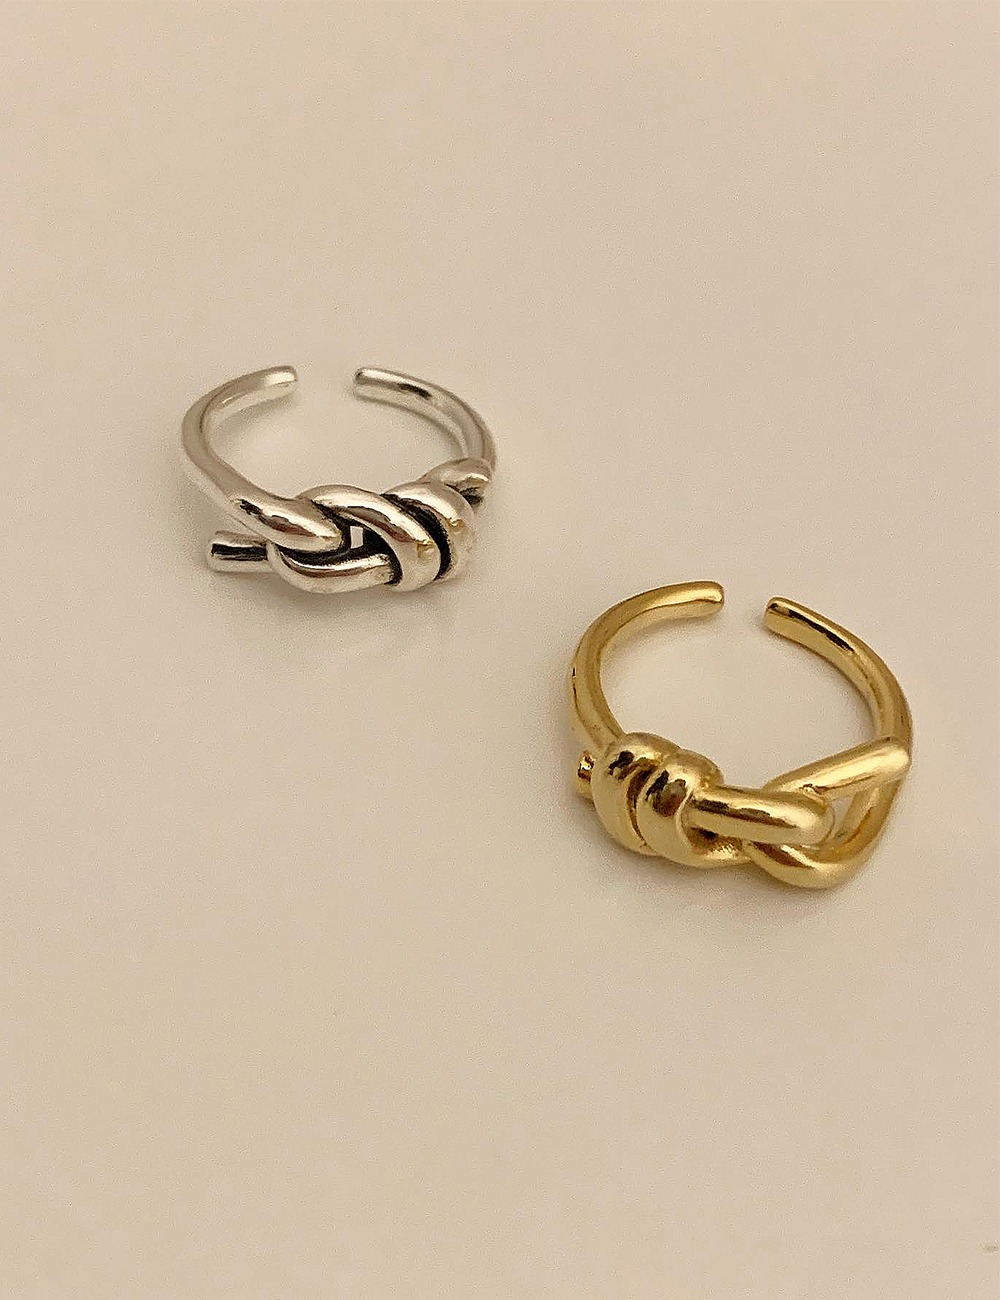 (silver 92.5) Antique knot open ring